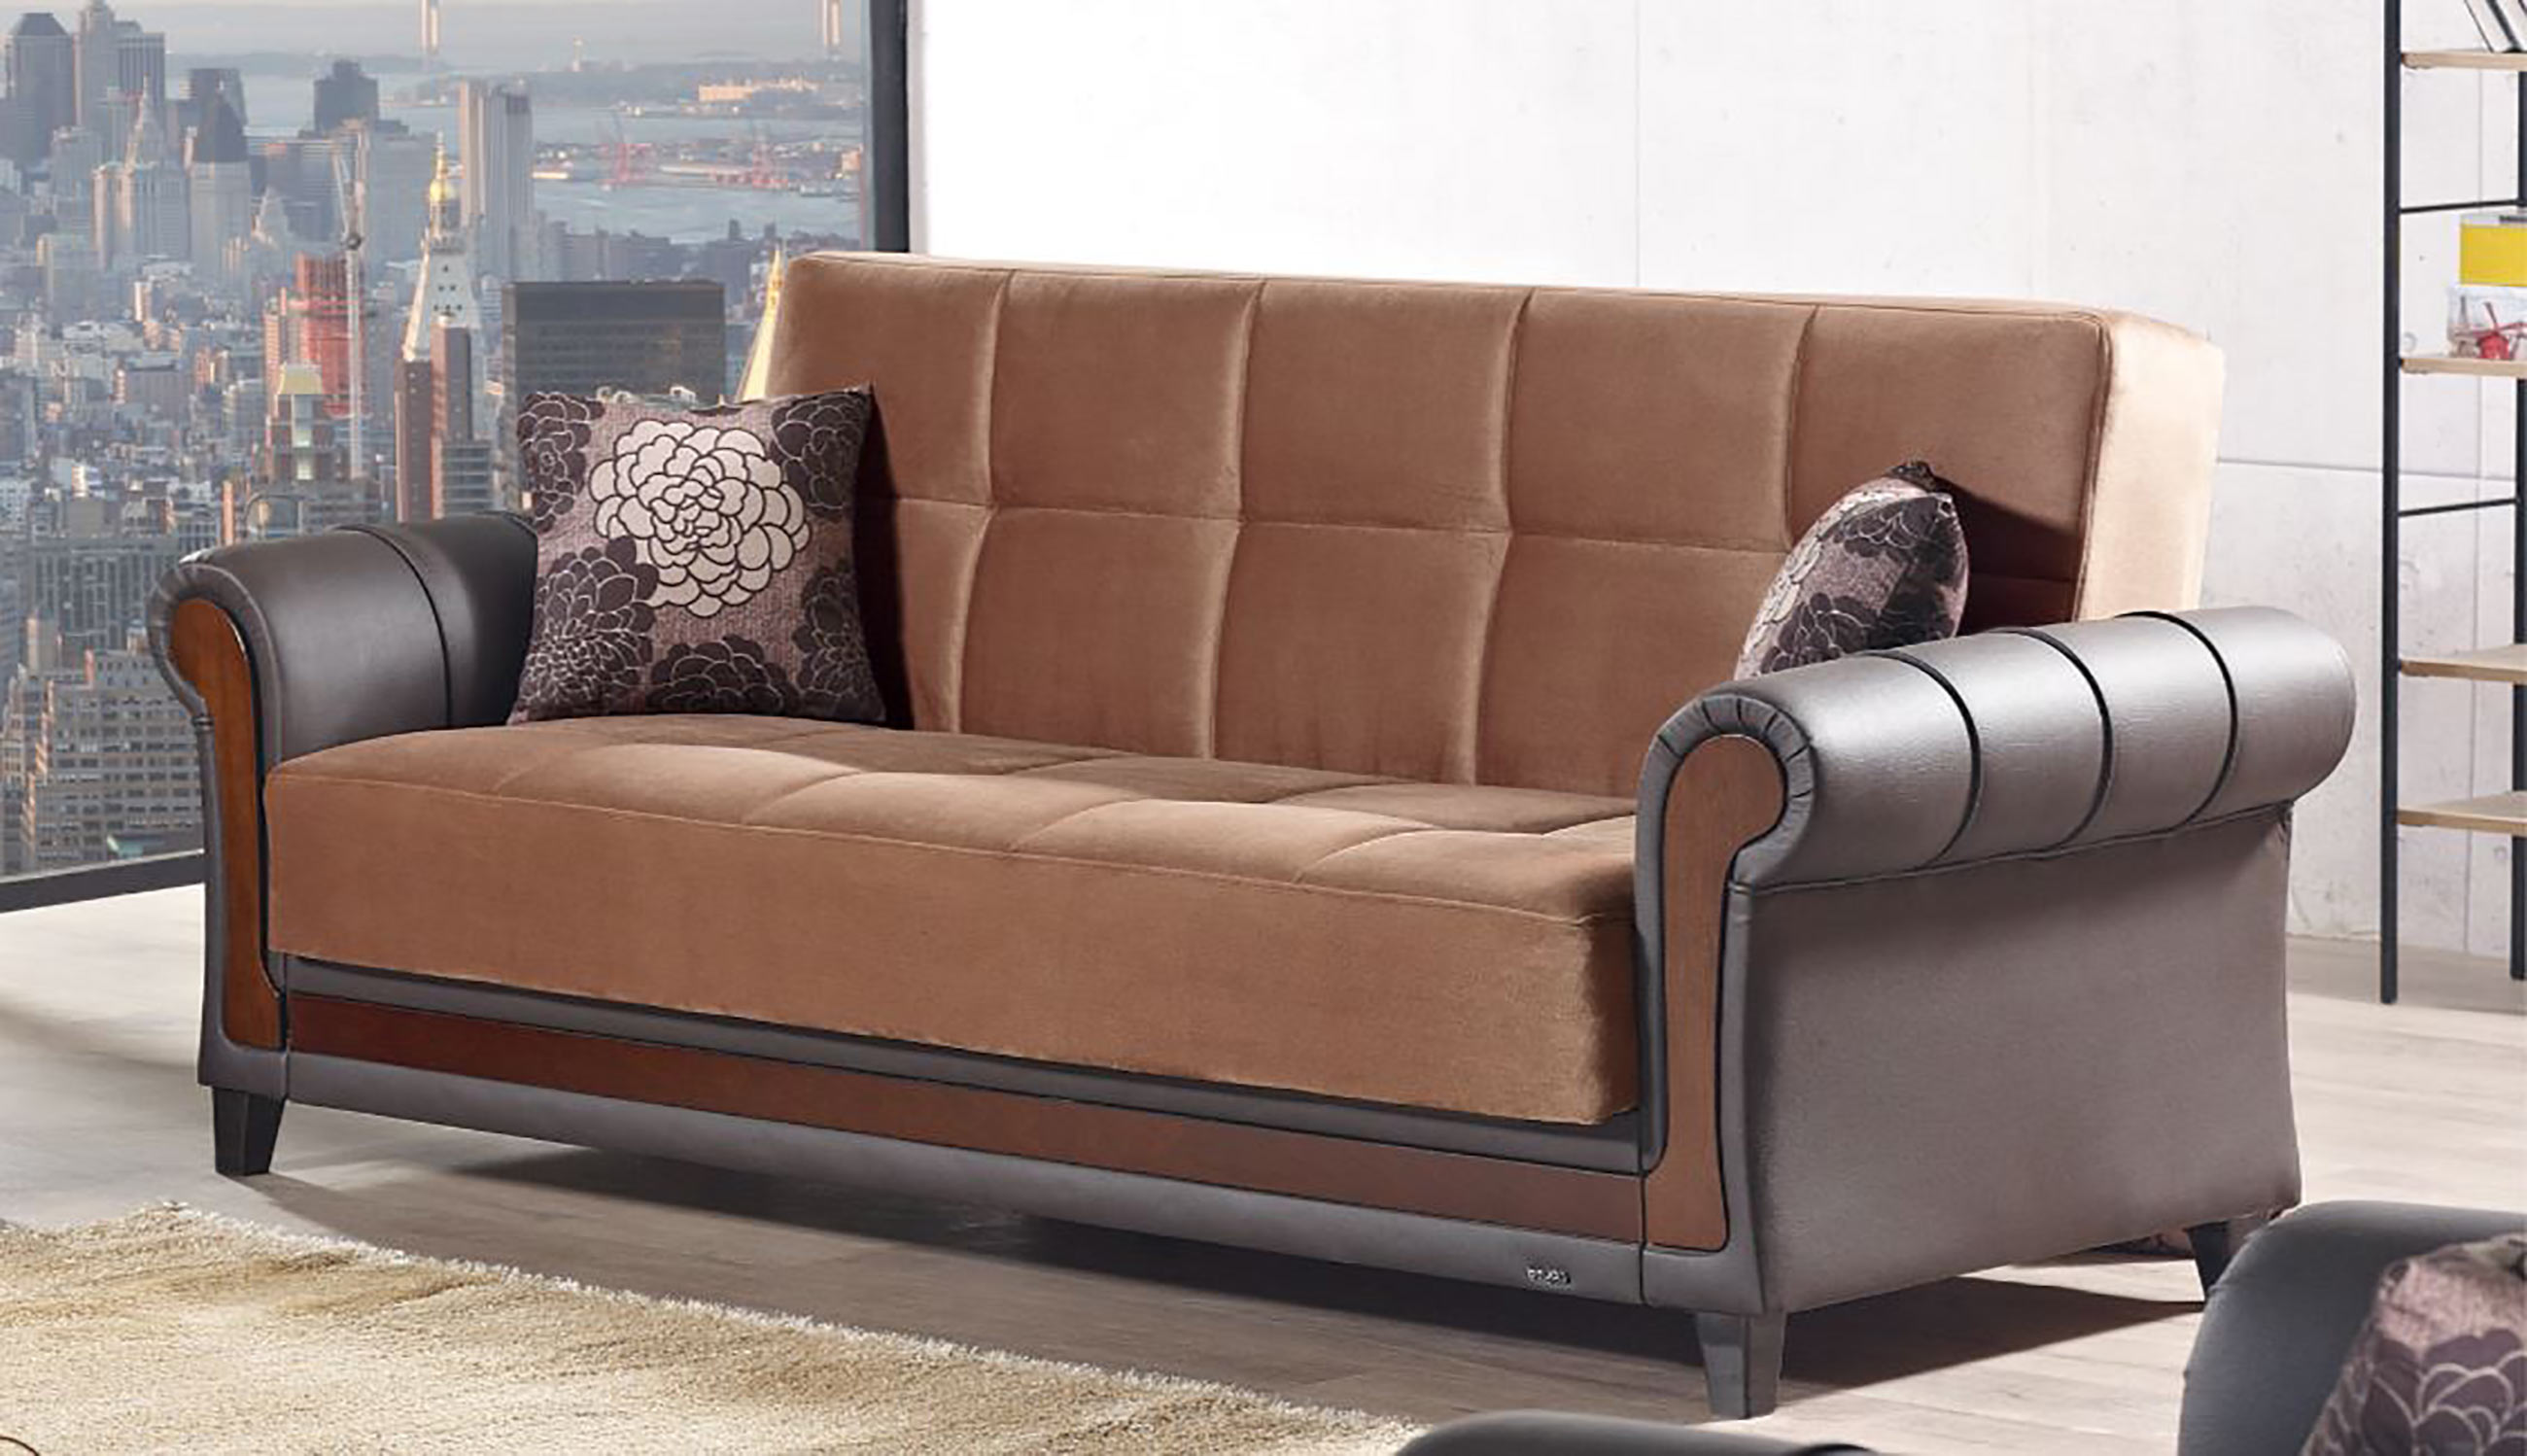 Long Island Brown Fabric Sofa Bed By Empire Furniture USA